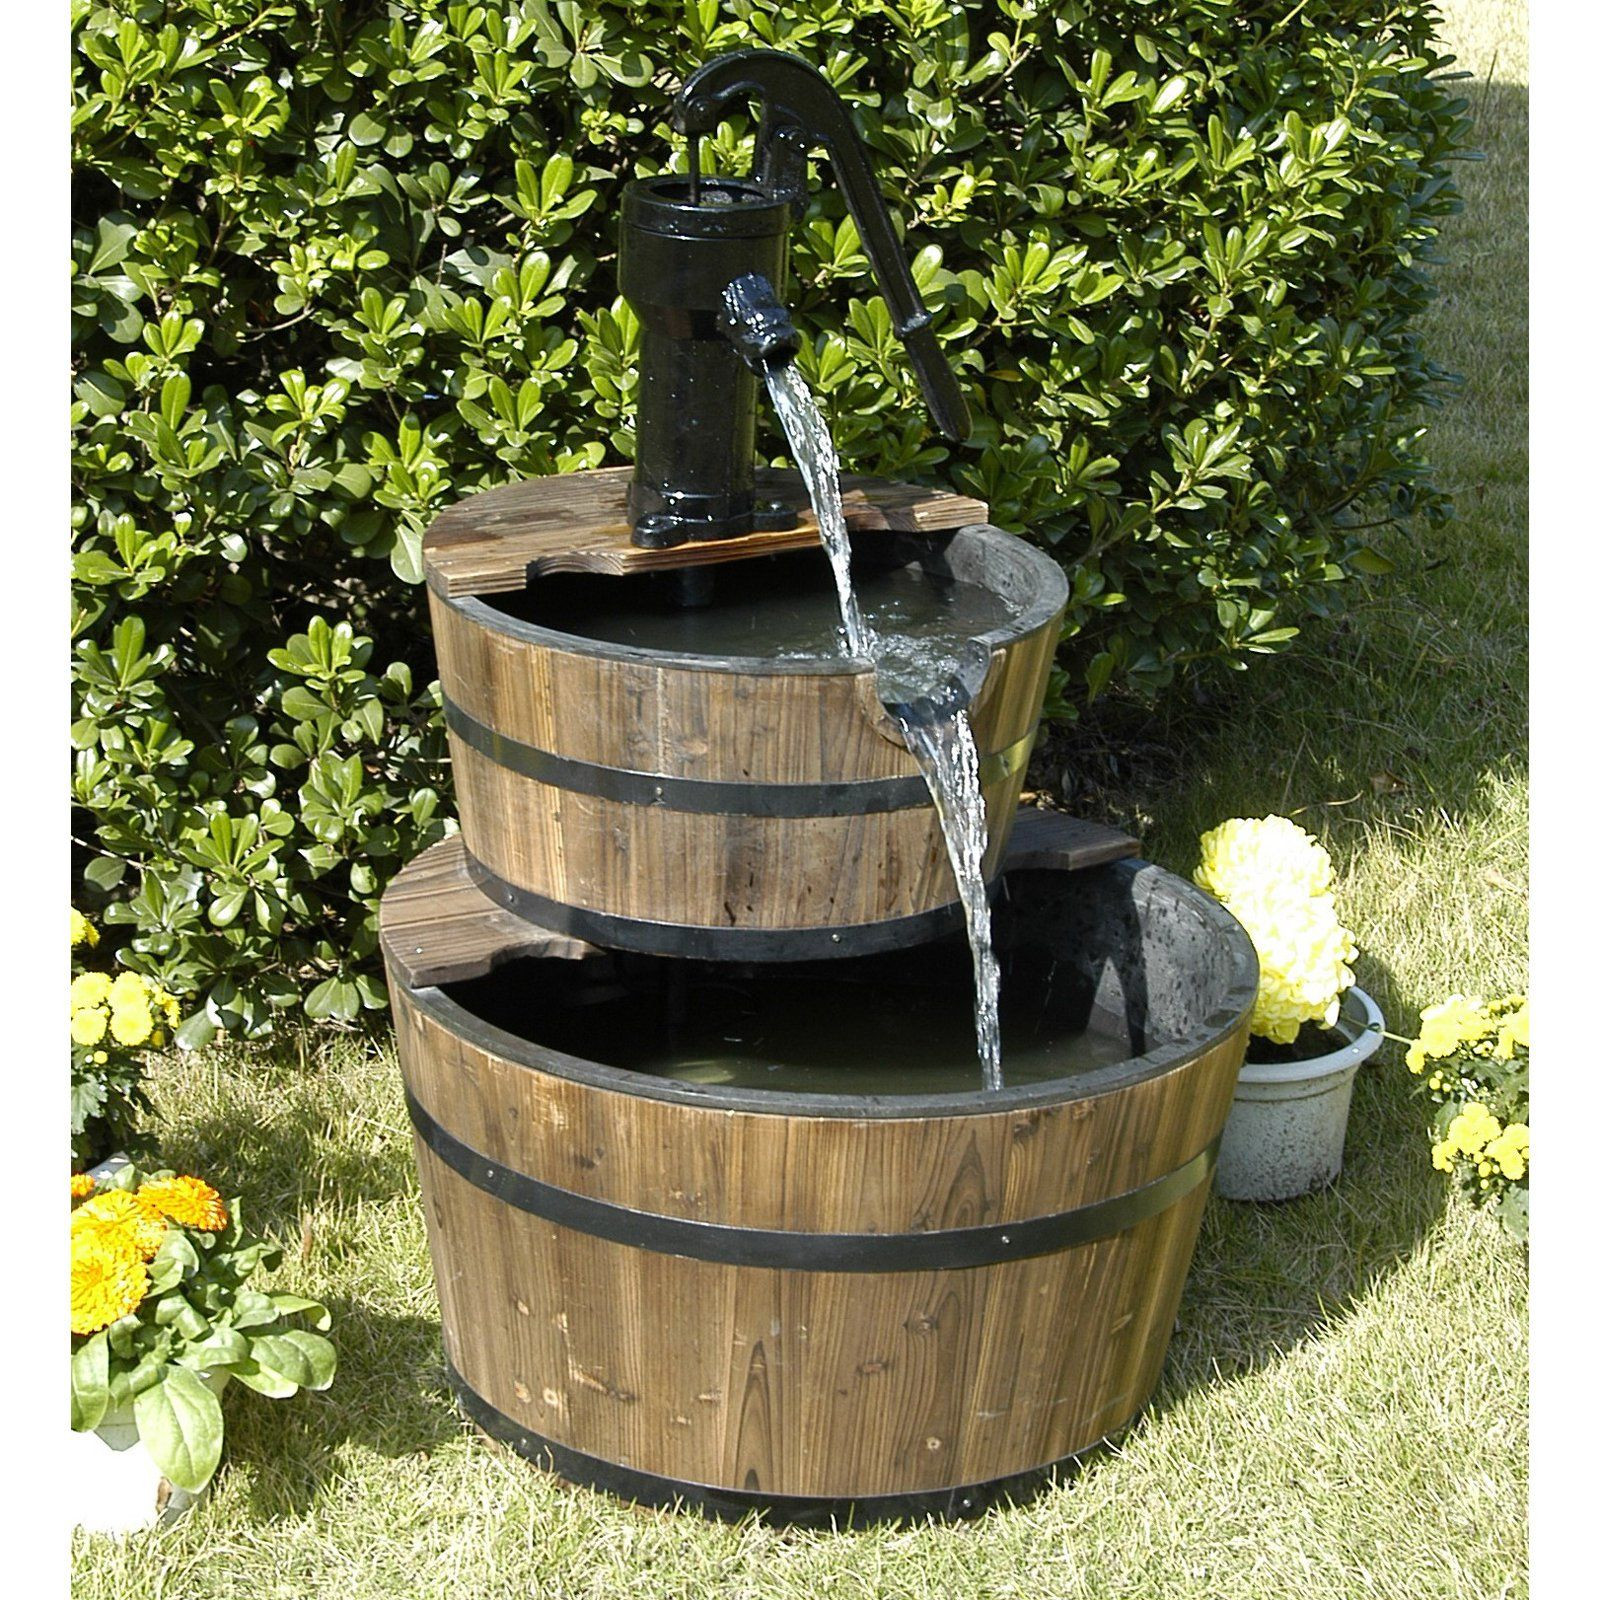 vase water fountain outdoor of hgc 2 tier wood barrel outdoor fountain bring the serenity and inside hgc 2 tier wood barrel outdoor fountain bring the serenity and peace of running water to your home with the hgc 2 tier wood barrel outdoor fountain